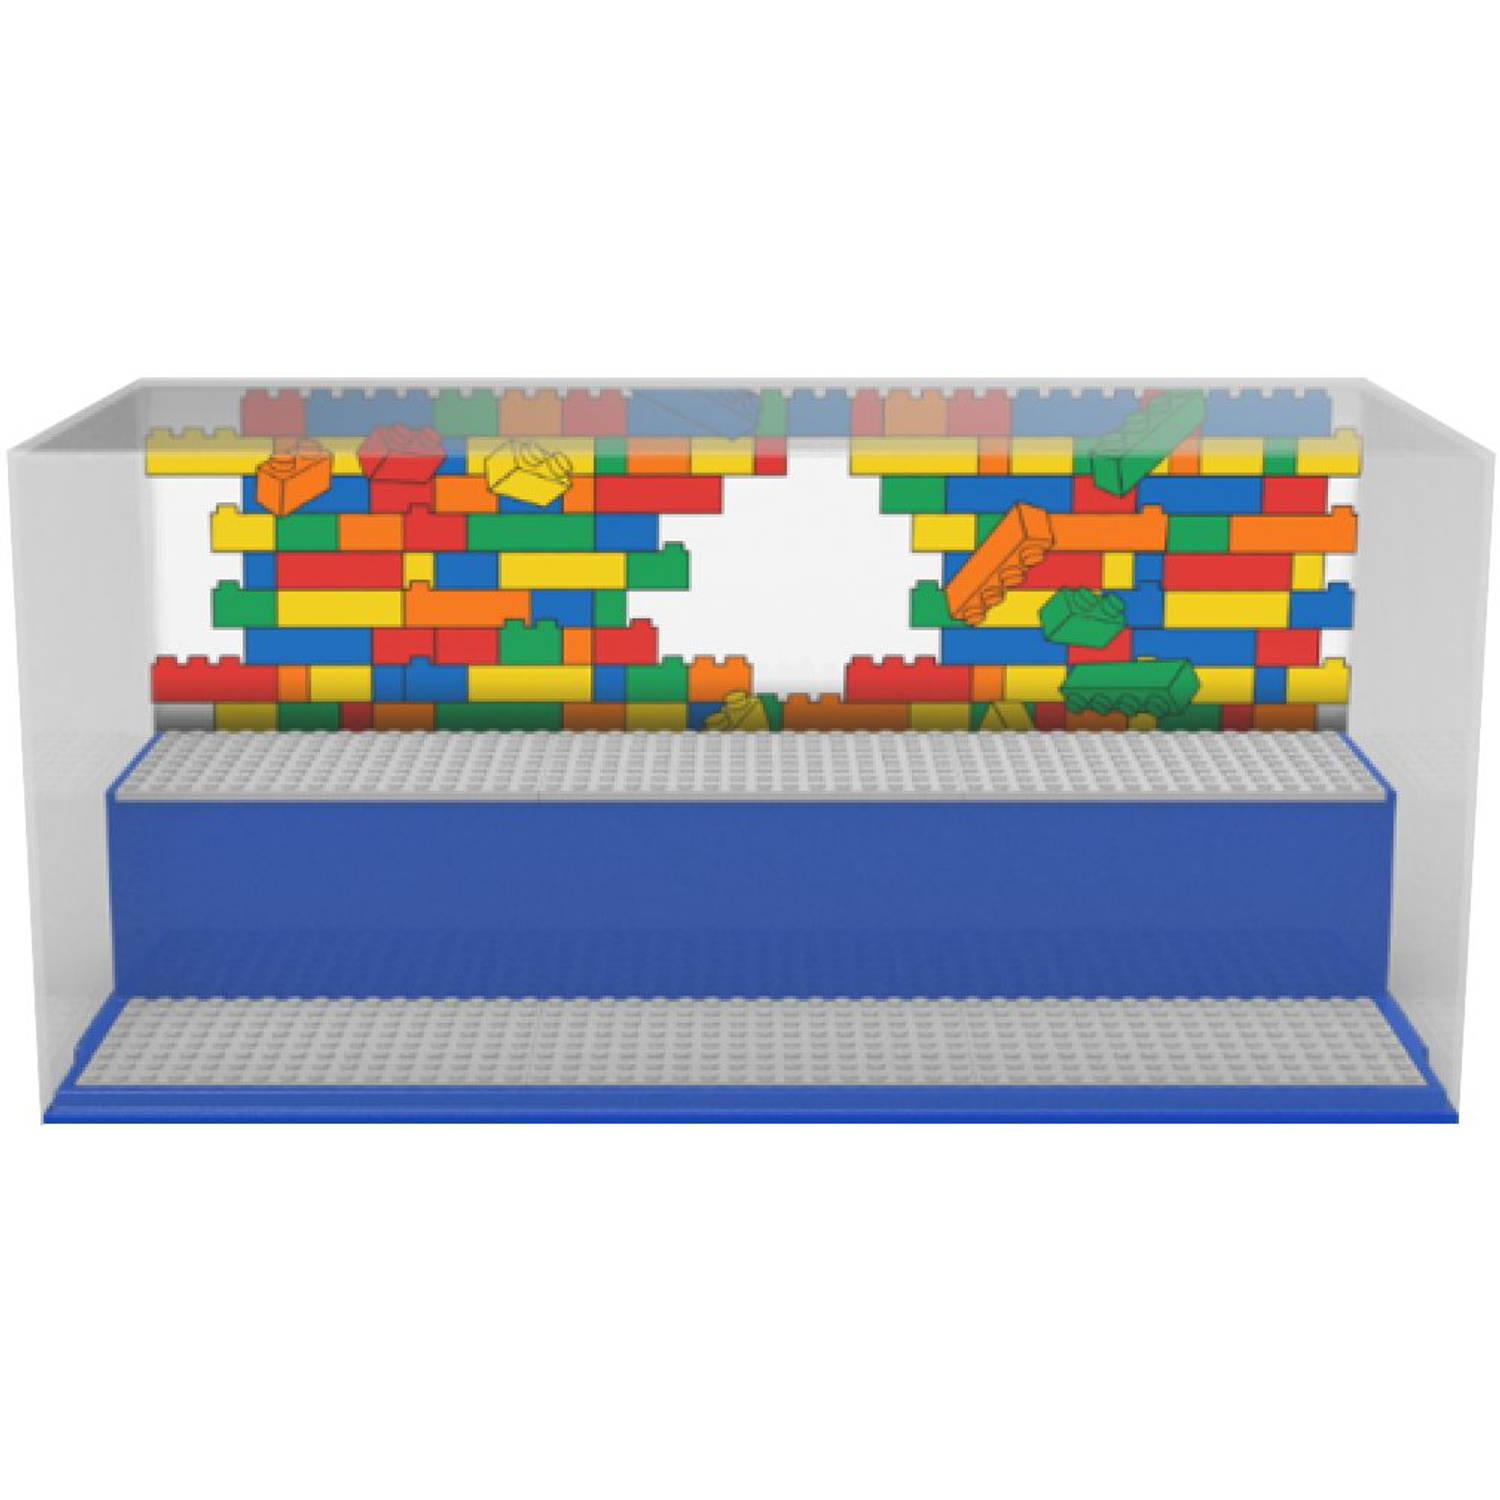 Opbergbox LEGO play & display blauw